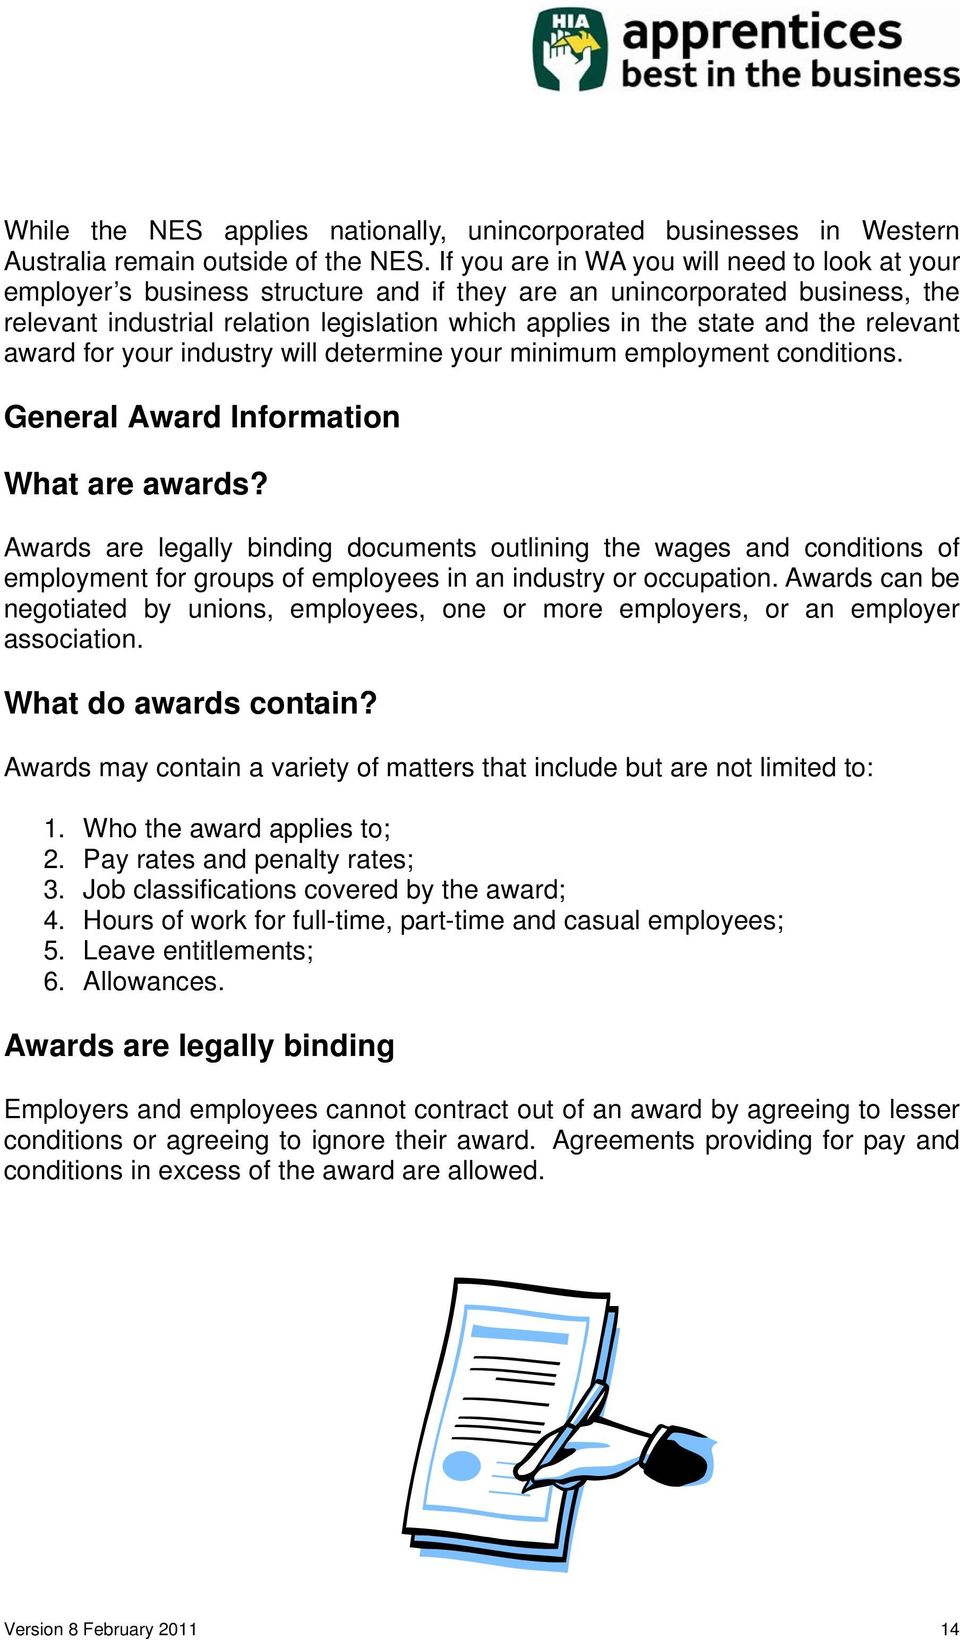 the relevant award for your industry will determine your minimum employment conditions. General Award Information What are awards?